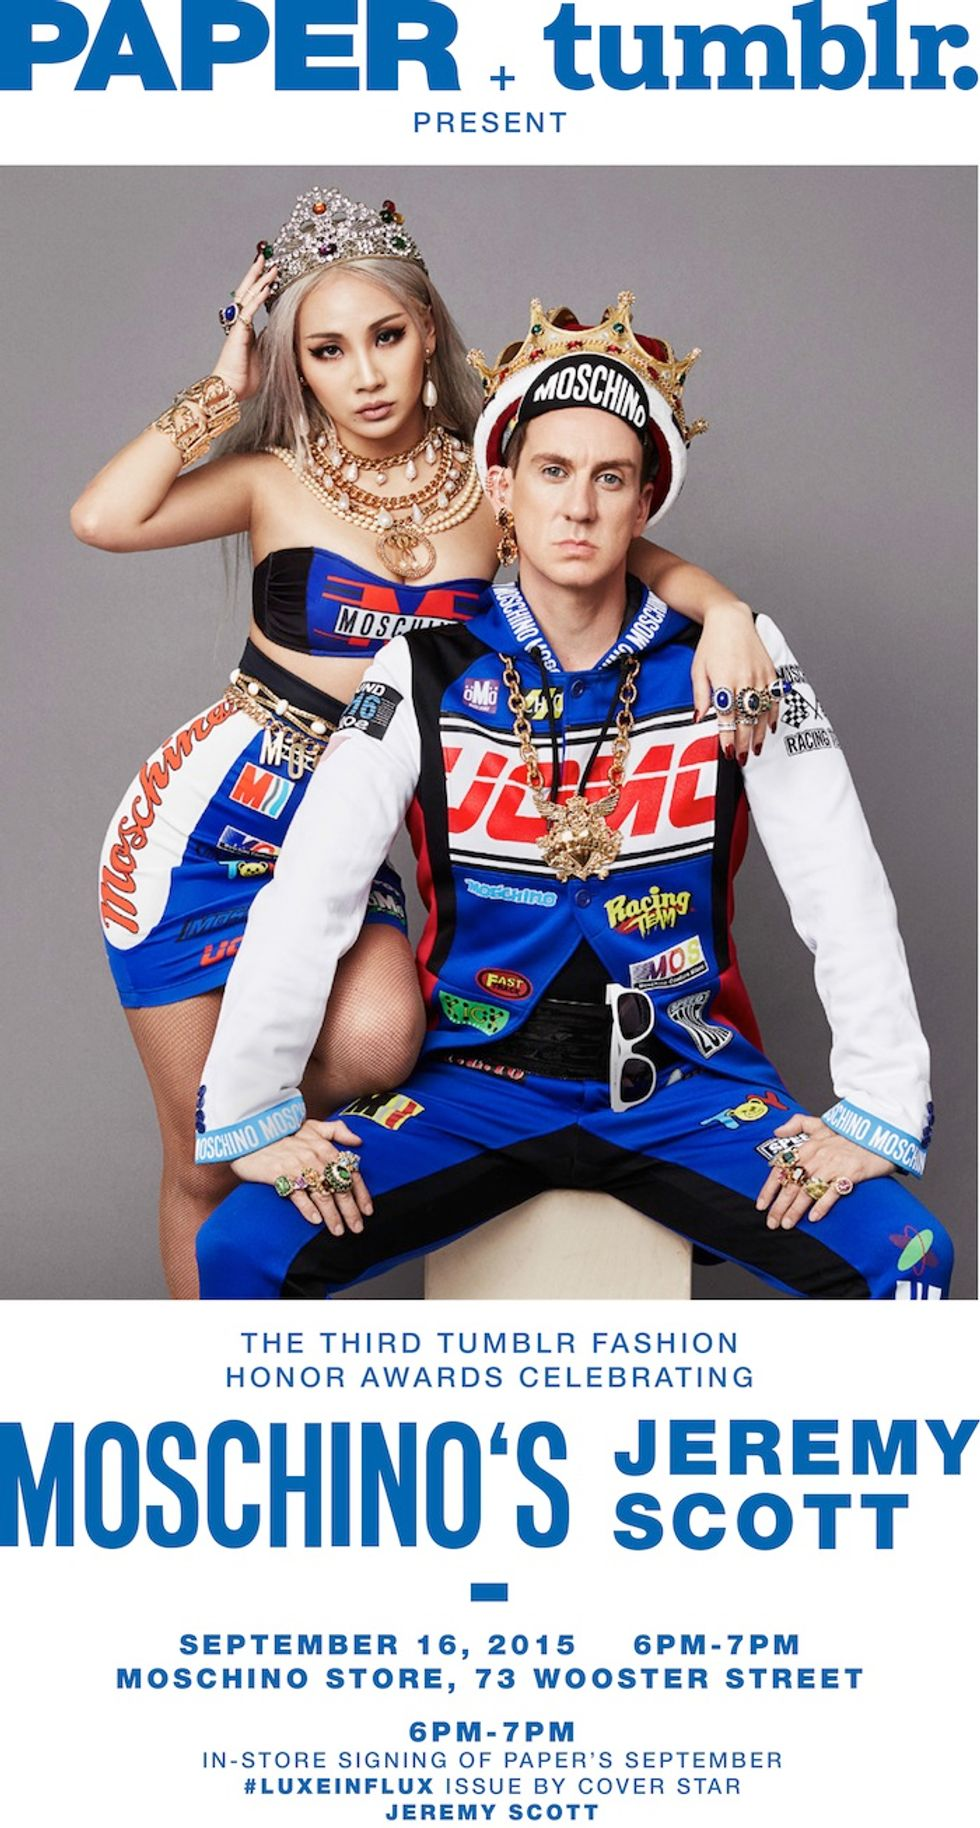 Paper X Tumblr Present a #NYFW Bash With Jeremy Scott at the Moschino Flagship!